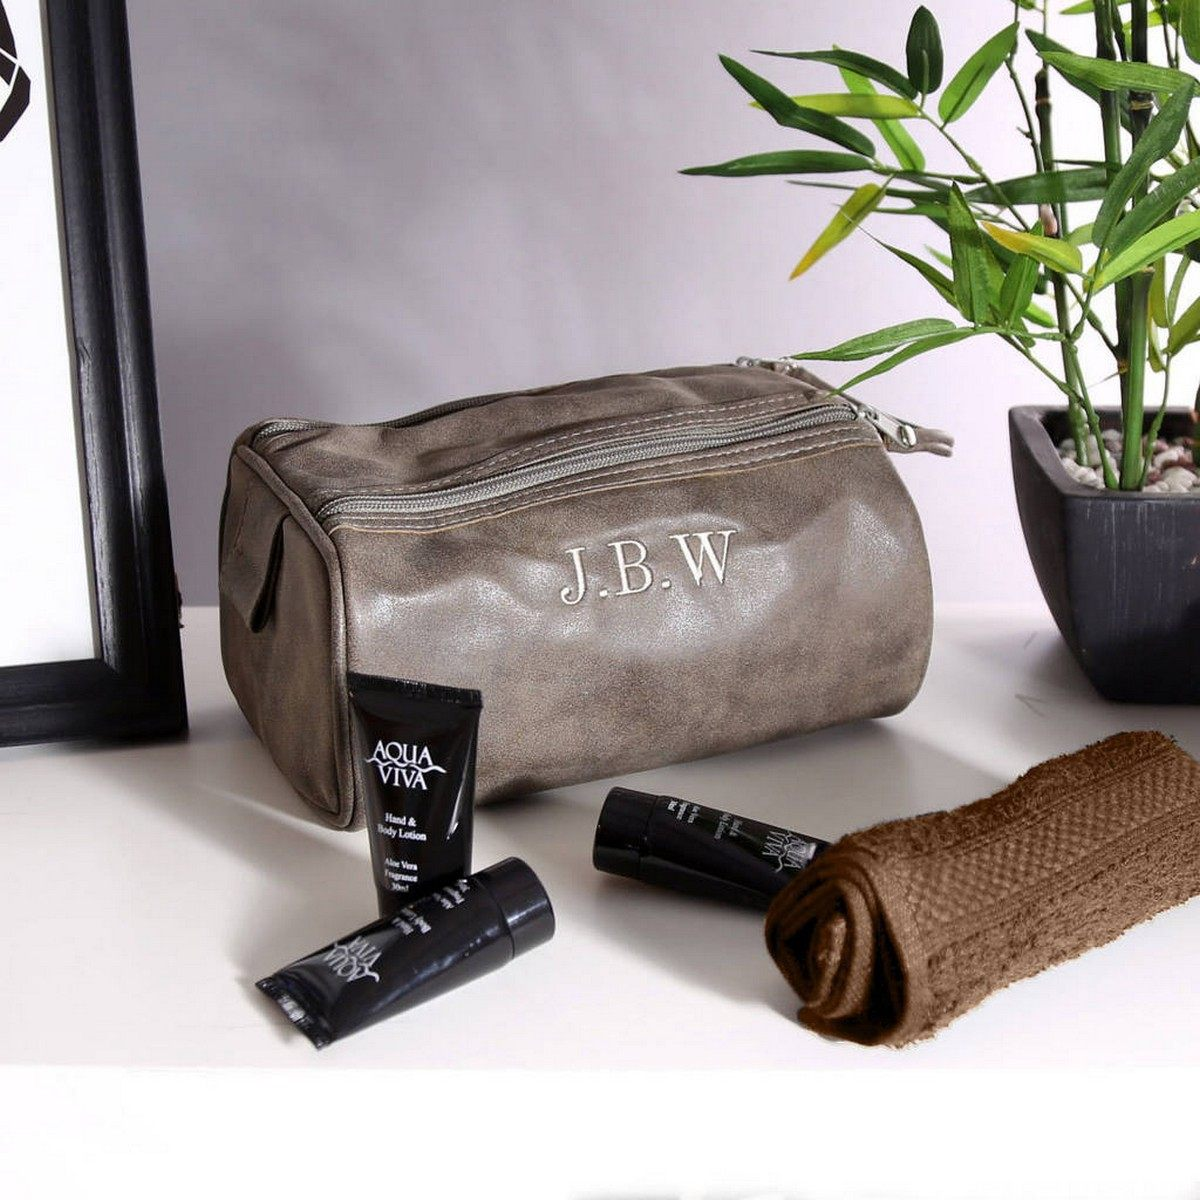 Separate toiletry bags are a simple way to keep your essentials easy to access, and they make packing (and then re-packing at the end of your trip) a lot less painful.